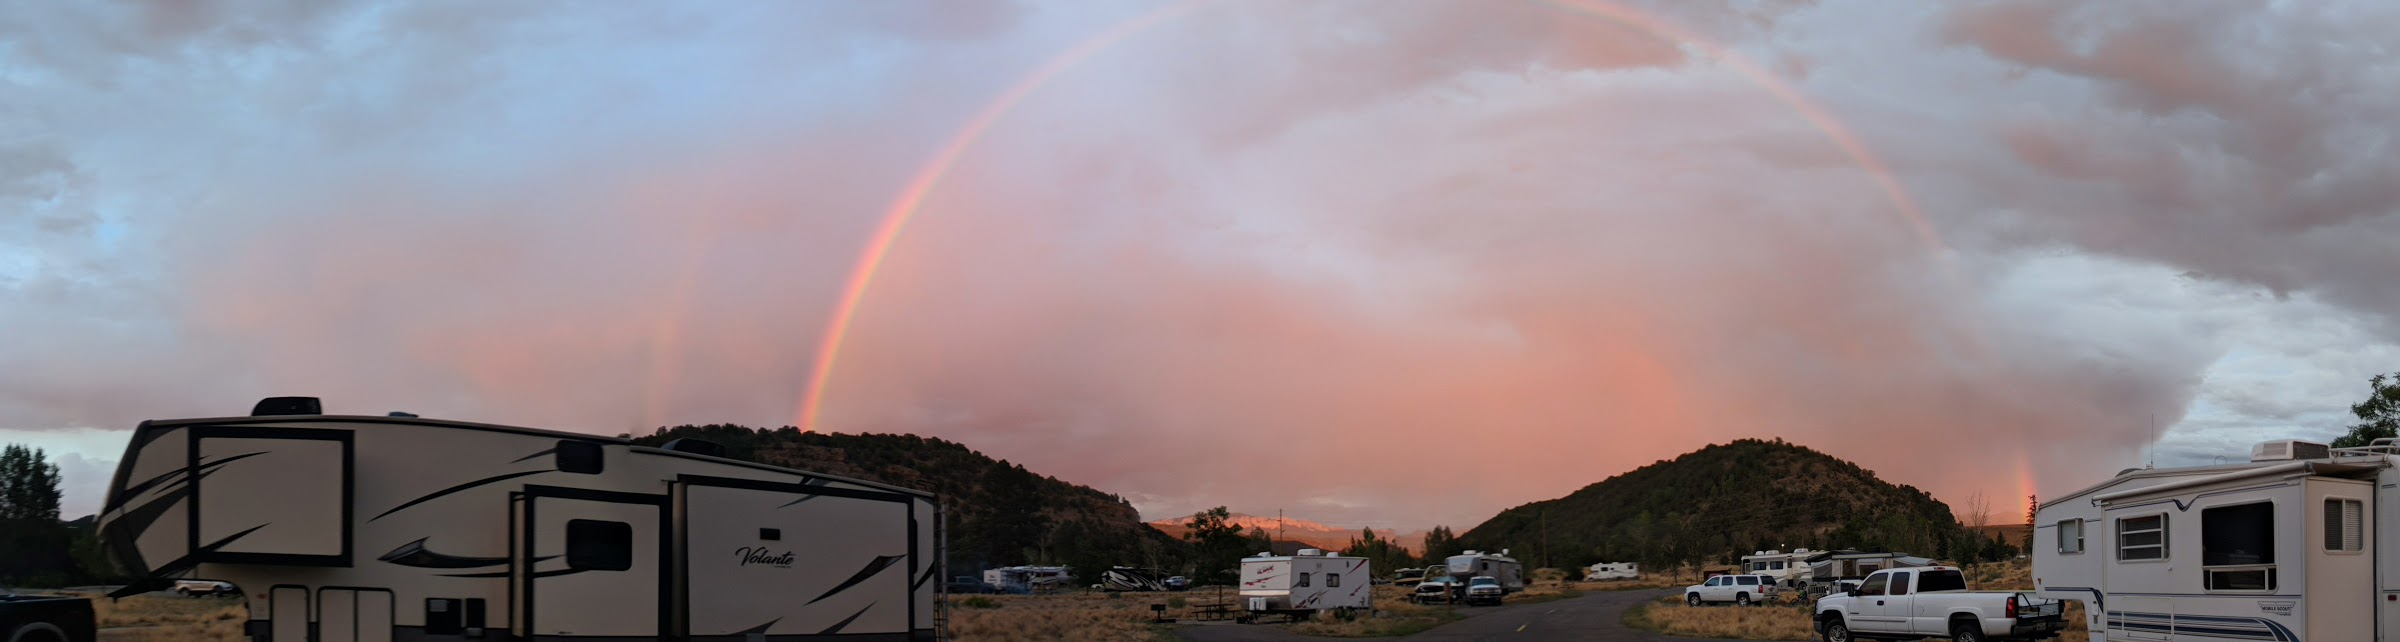 July 2018. Ridgway State Park, Colorado. This was our gift the night we arrived for a weekend in the trailer hanging with friends.